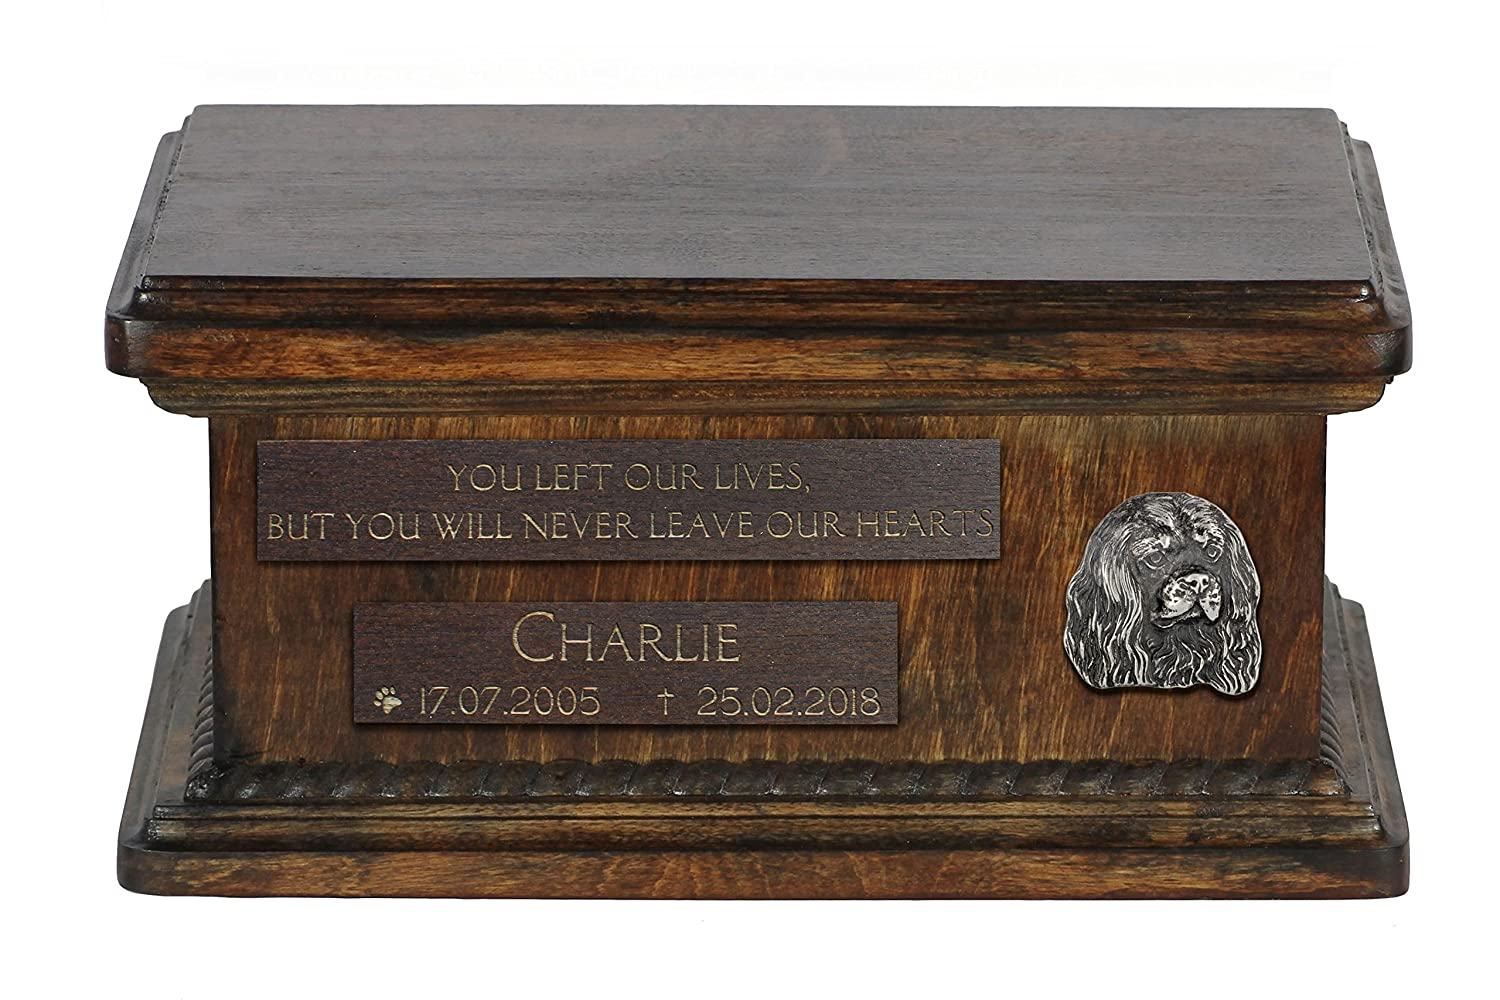 ArtDog Ltd. Cavalier King Charles Spaniel, urn for dog's ashes with relief and sentence with your dog name and date